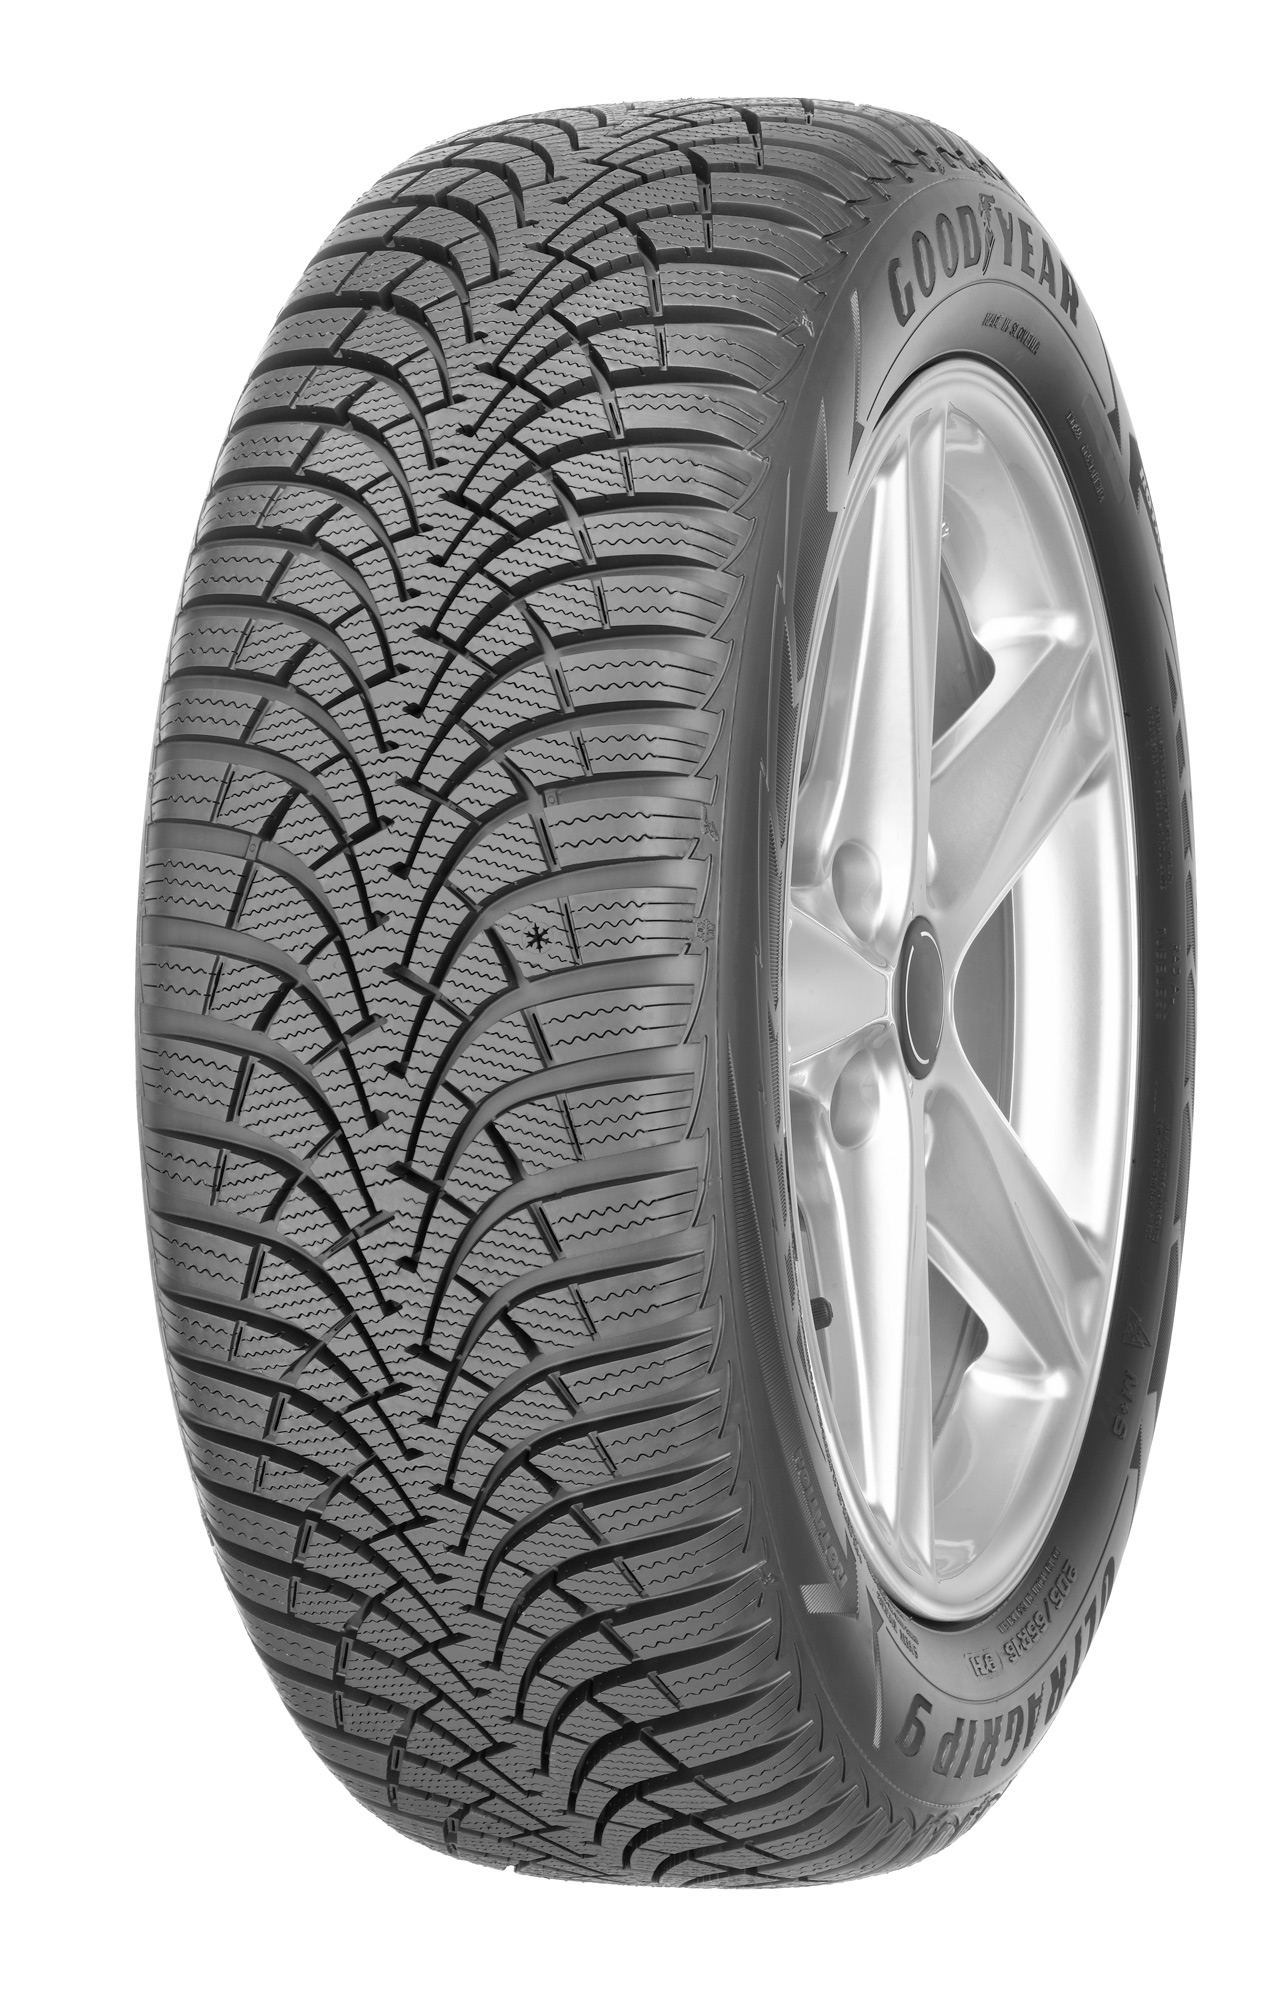 Anvelopa iarna GOODYEAR UG 9 MS 185/60 R15 84T